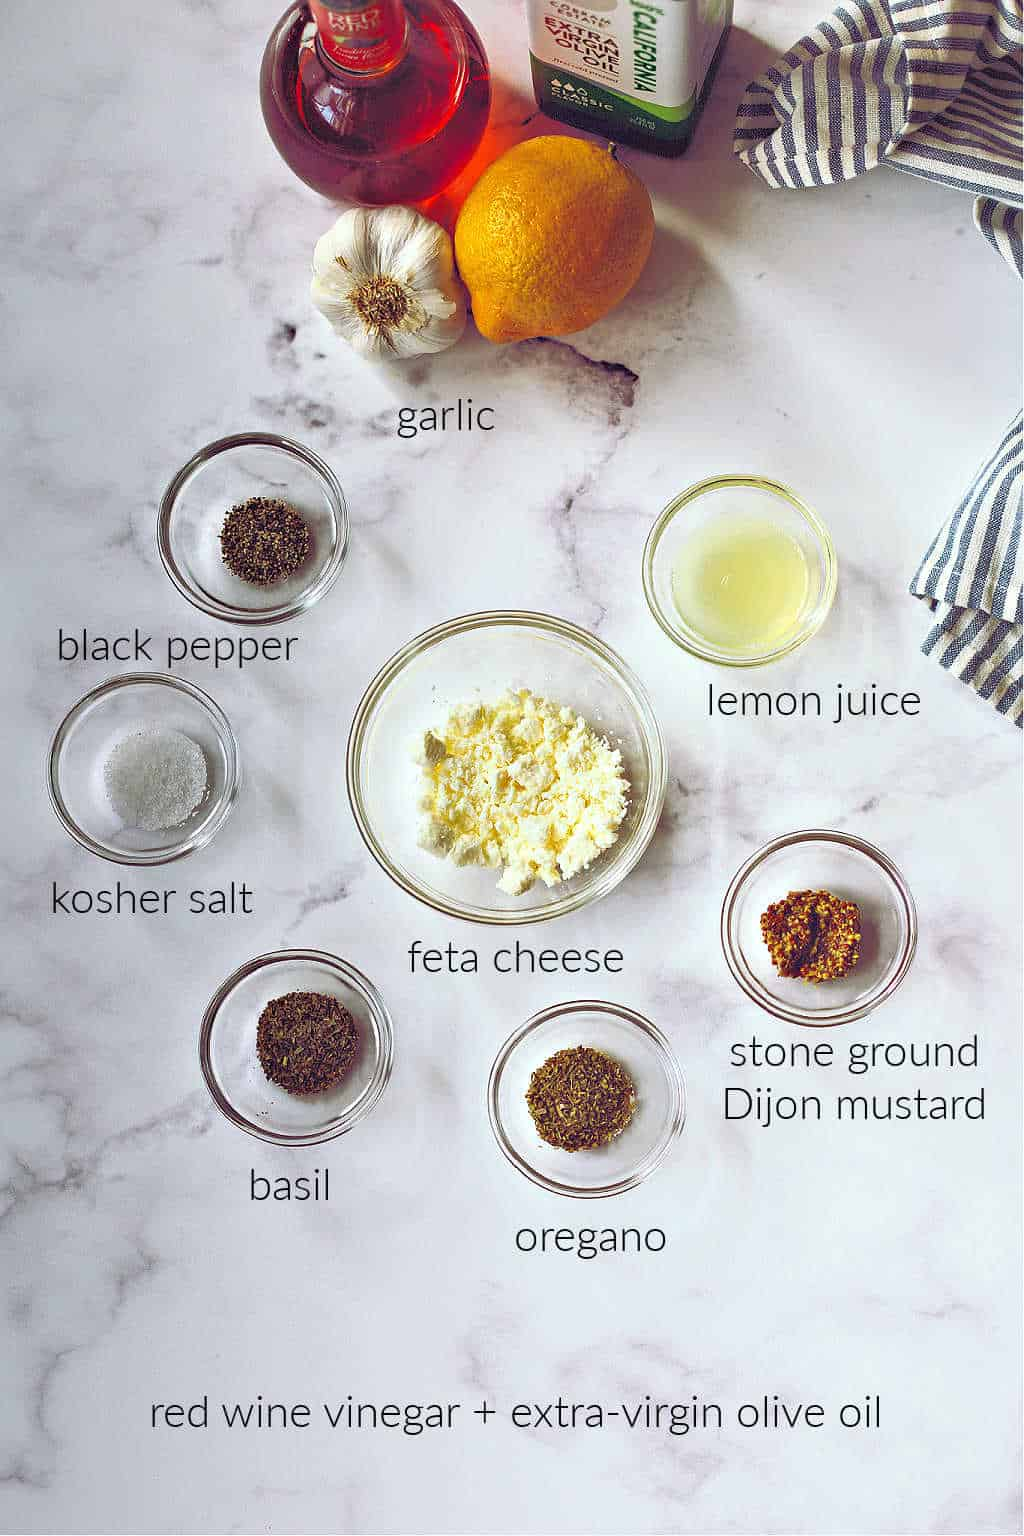 ingredients for greek salad dressing